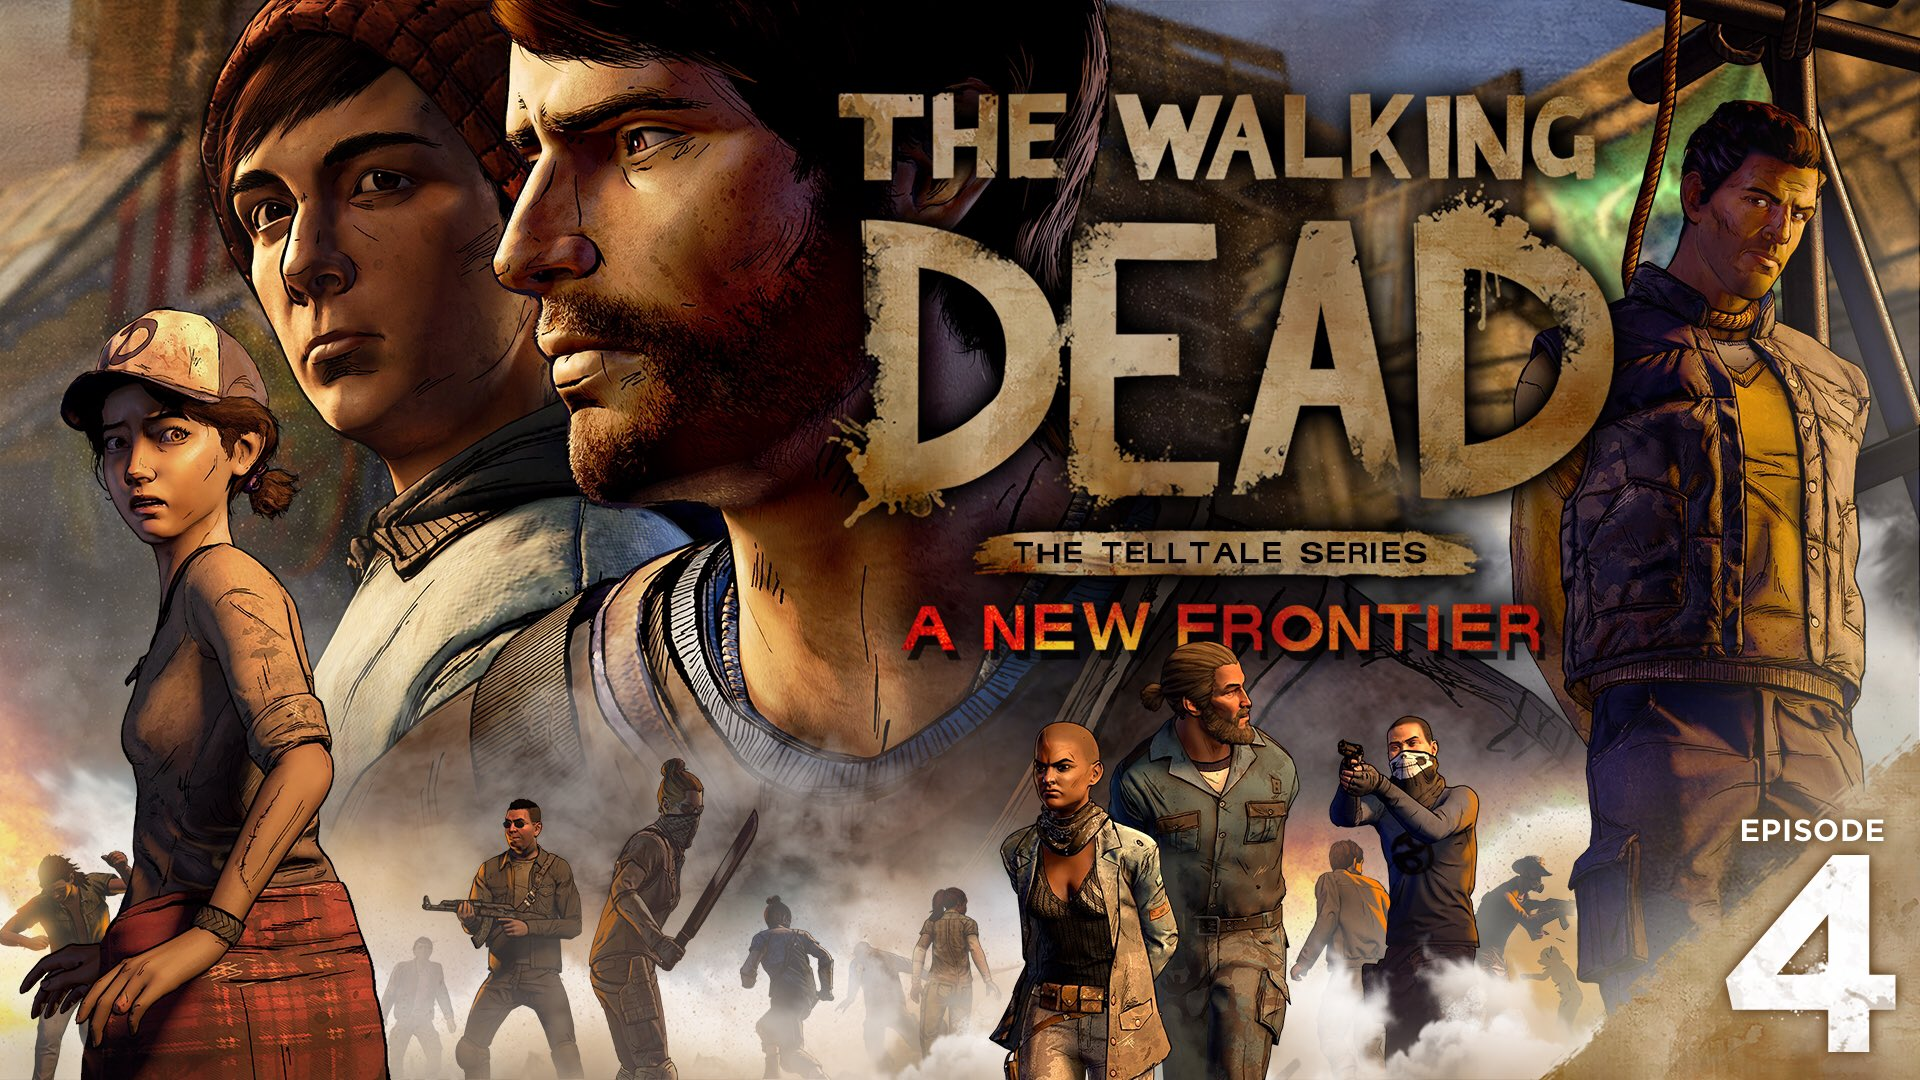 The Walking Dead A New Frontier Episode 4 Release Date Announced